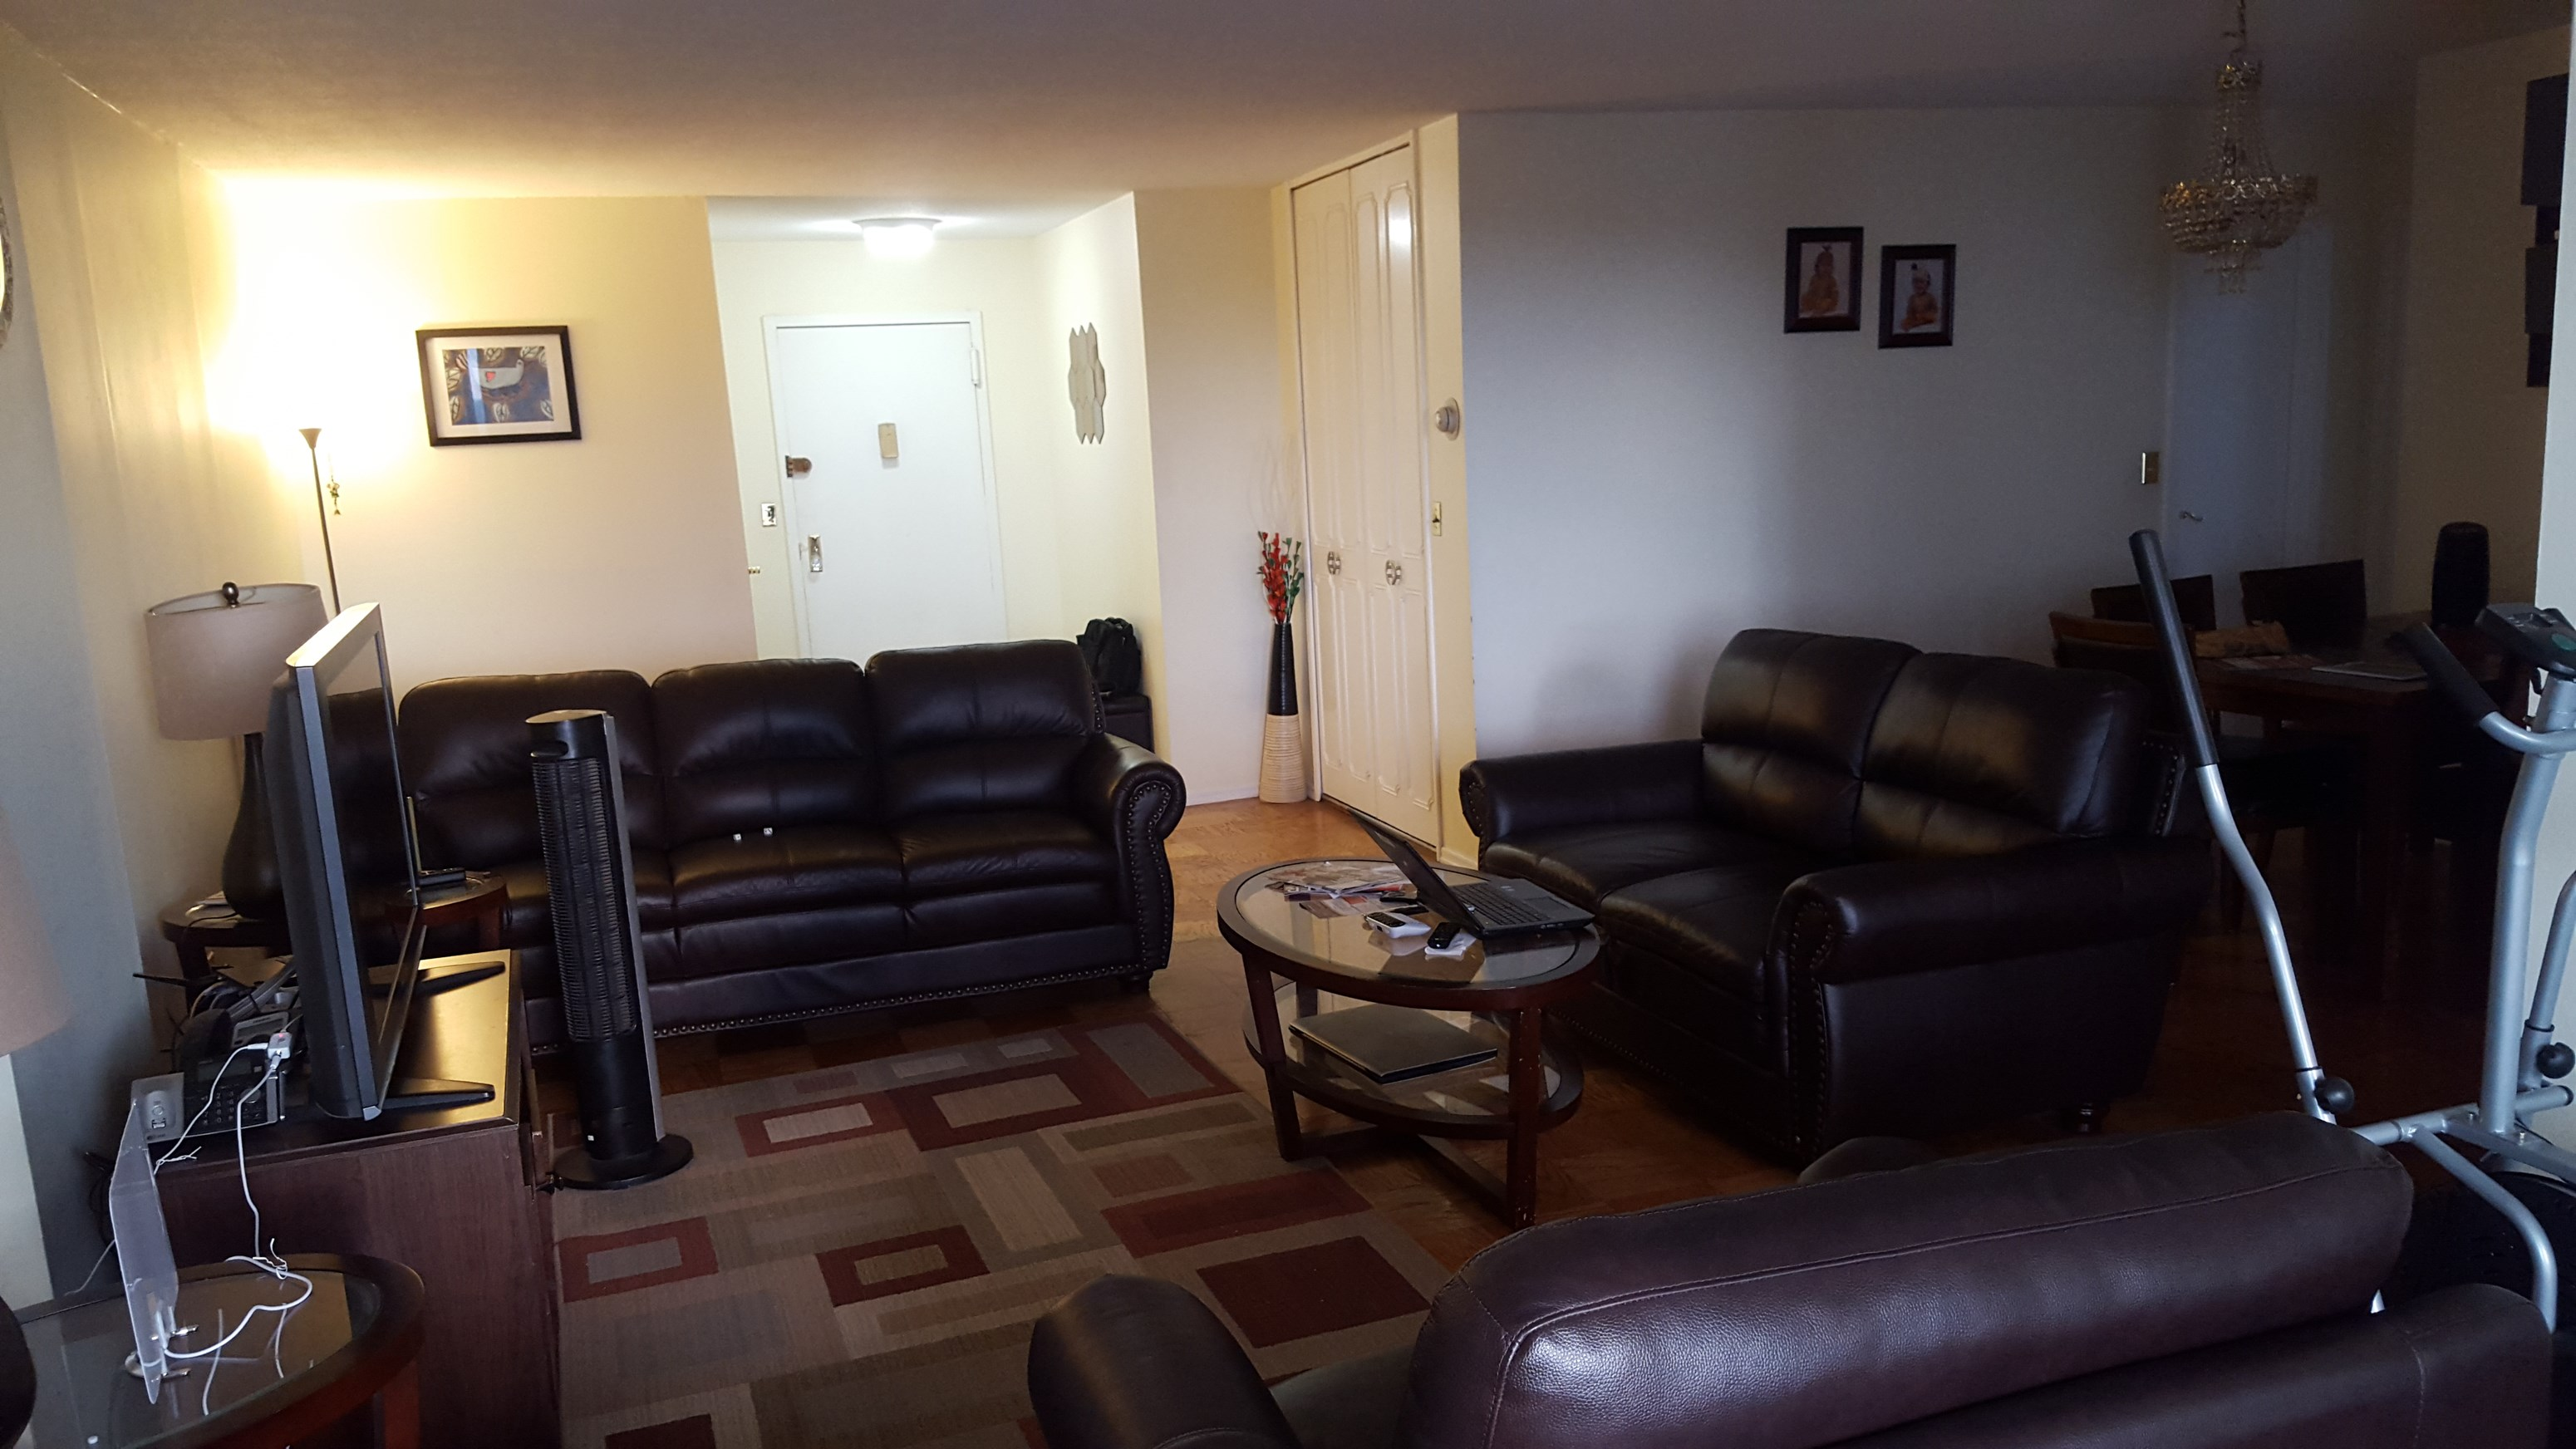 House For Rent In Hartford Metro Area Apartments Flats Commercial Space